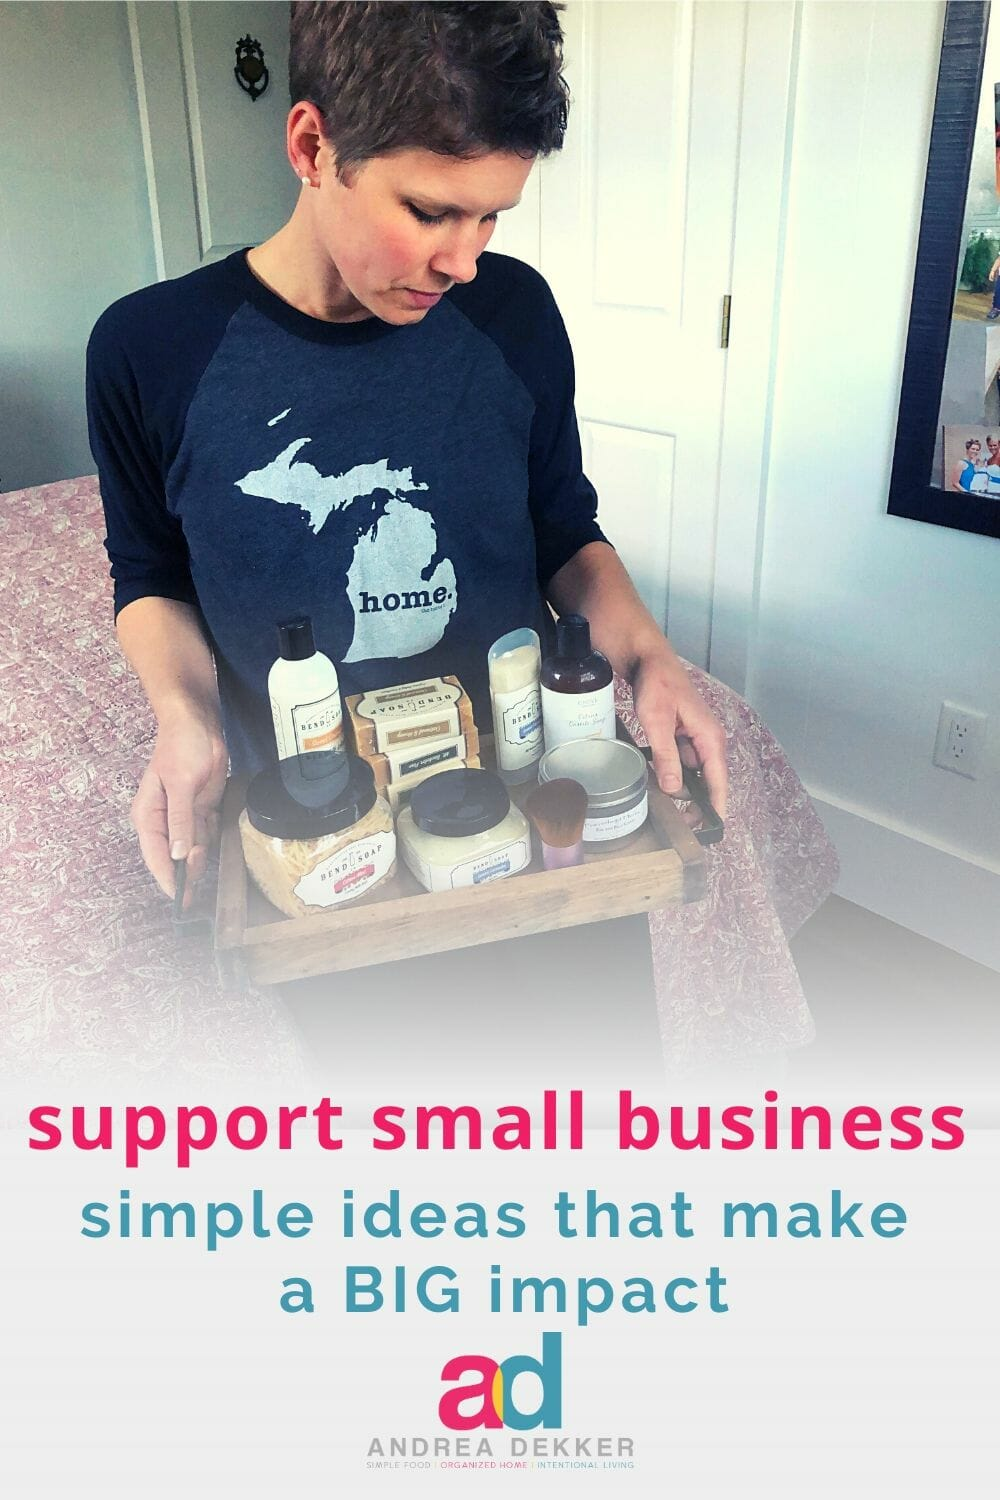 6 simple ideas to support your favorite local (and not-so-local) small businesses. You might not realize how BIG of an impact you can make! via @andreadekker